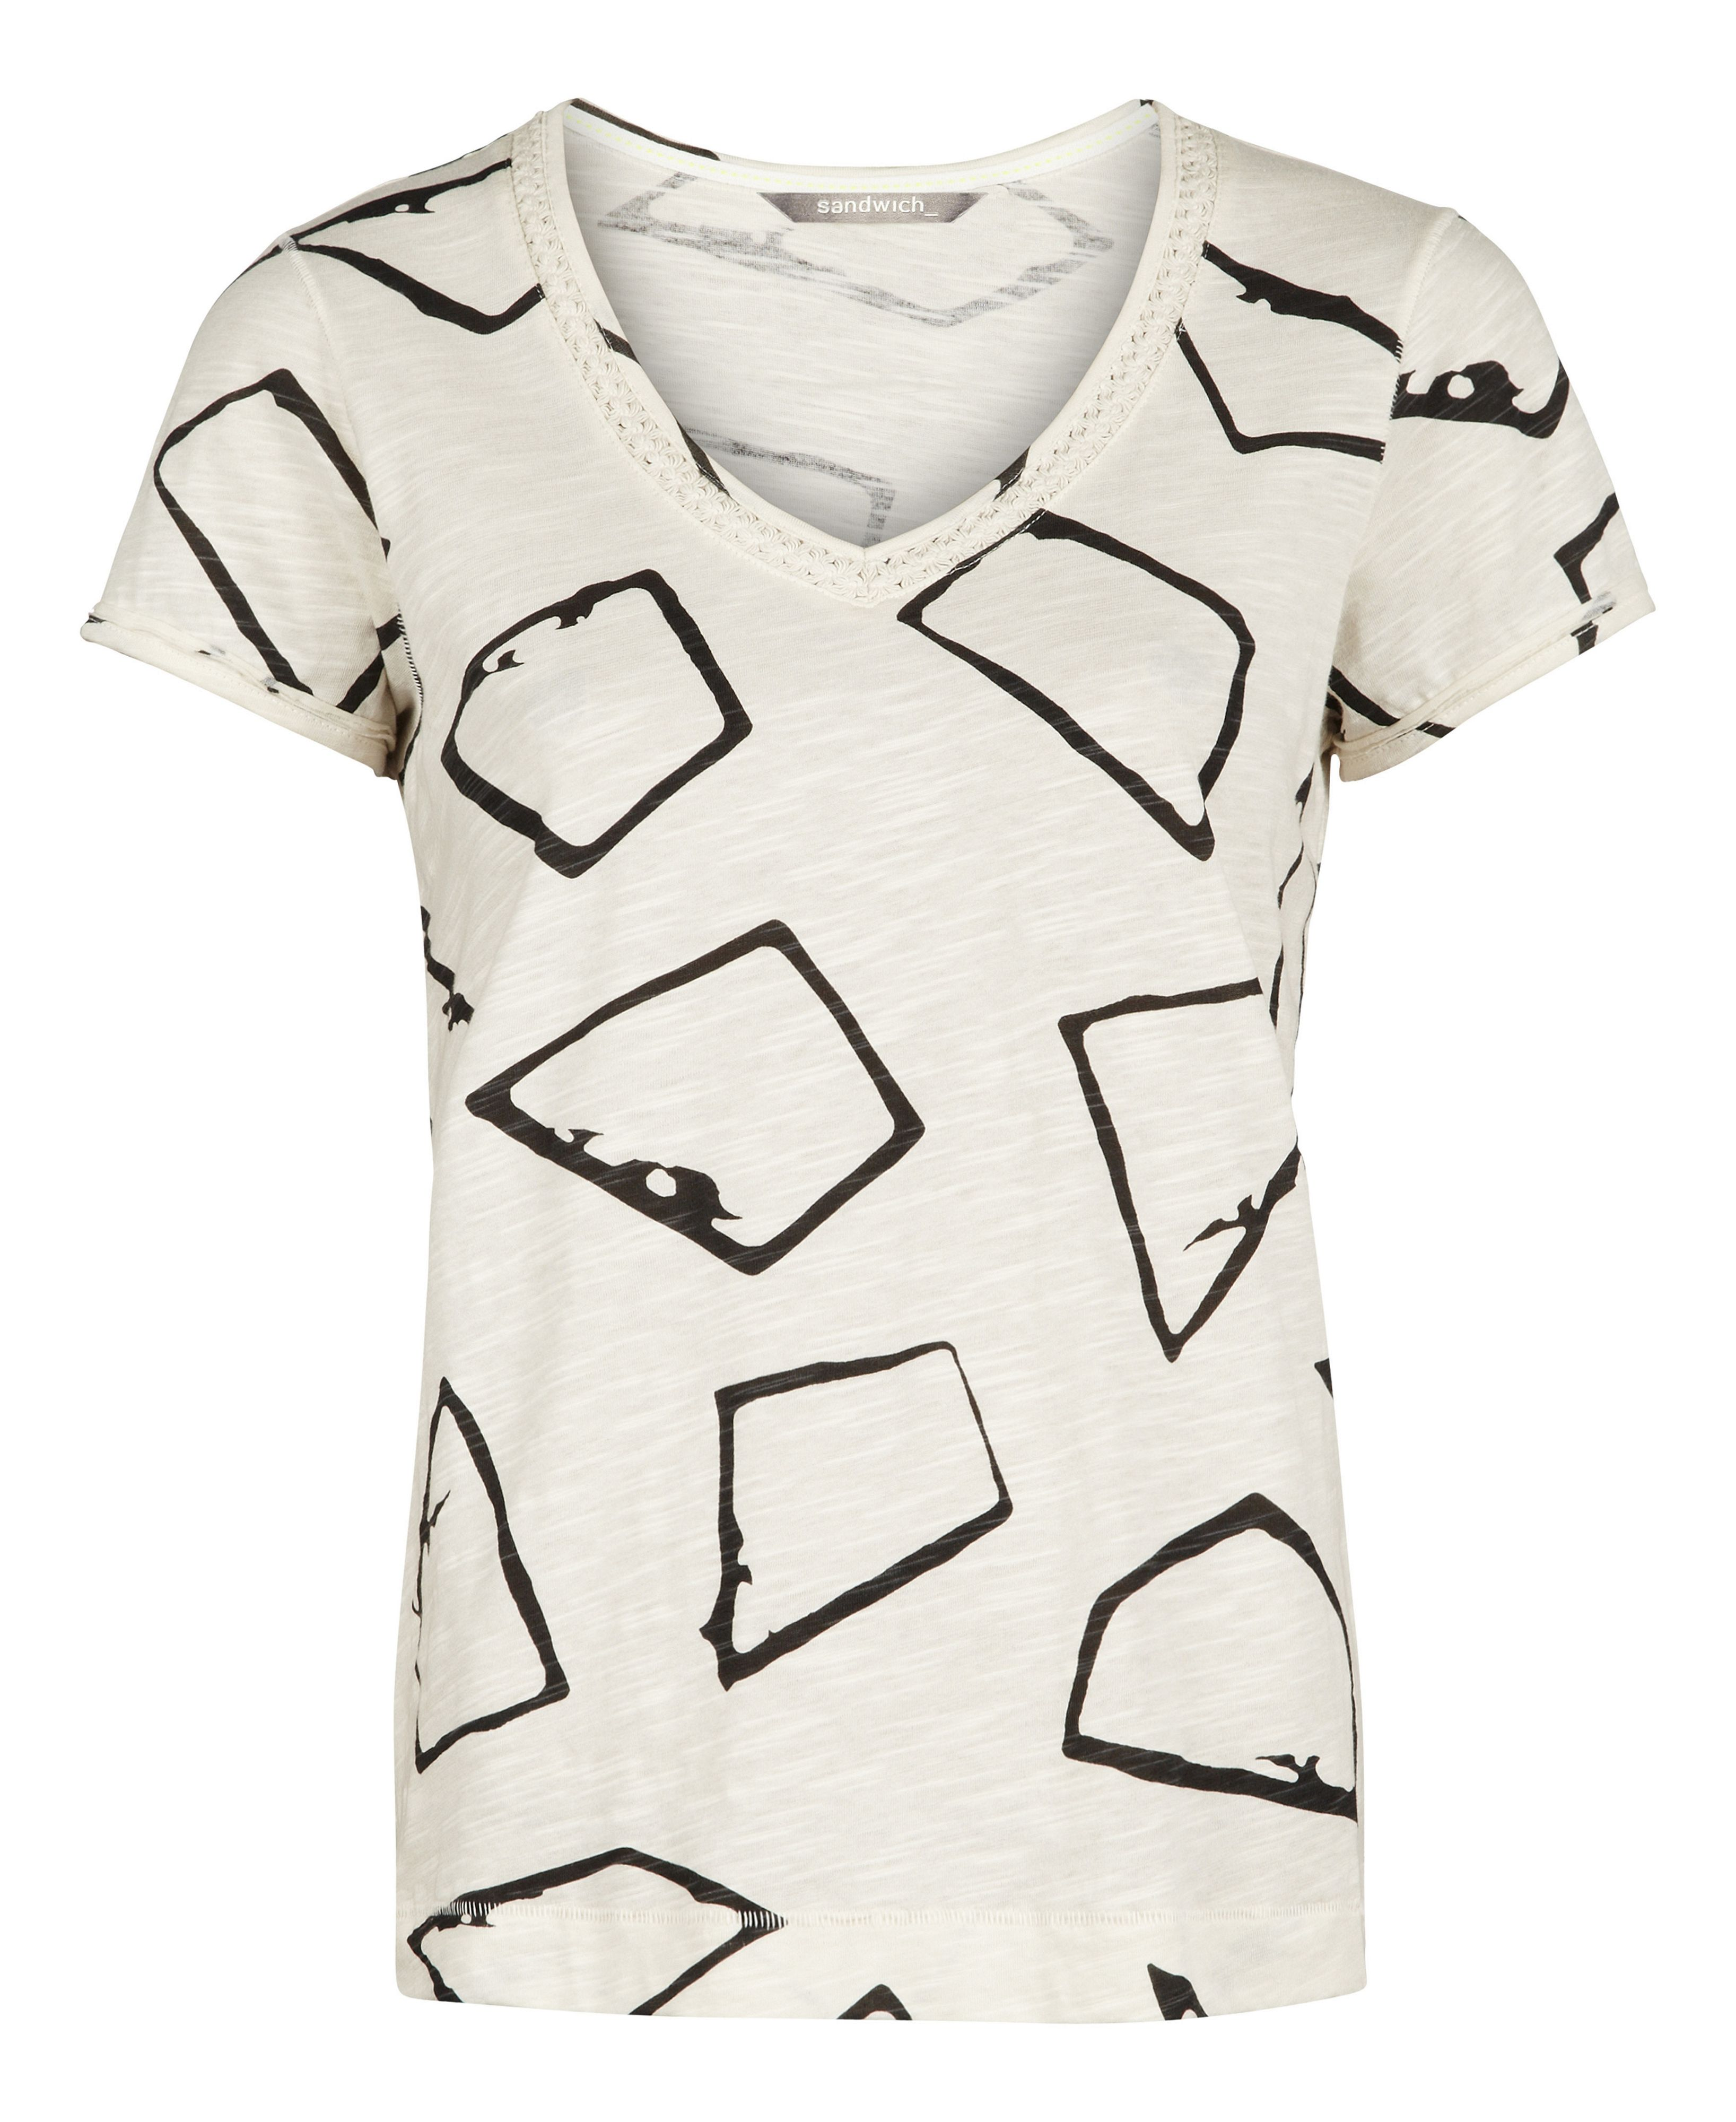 Printed short sleeve t-shirt